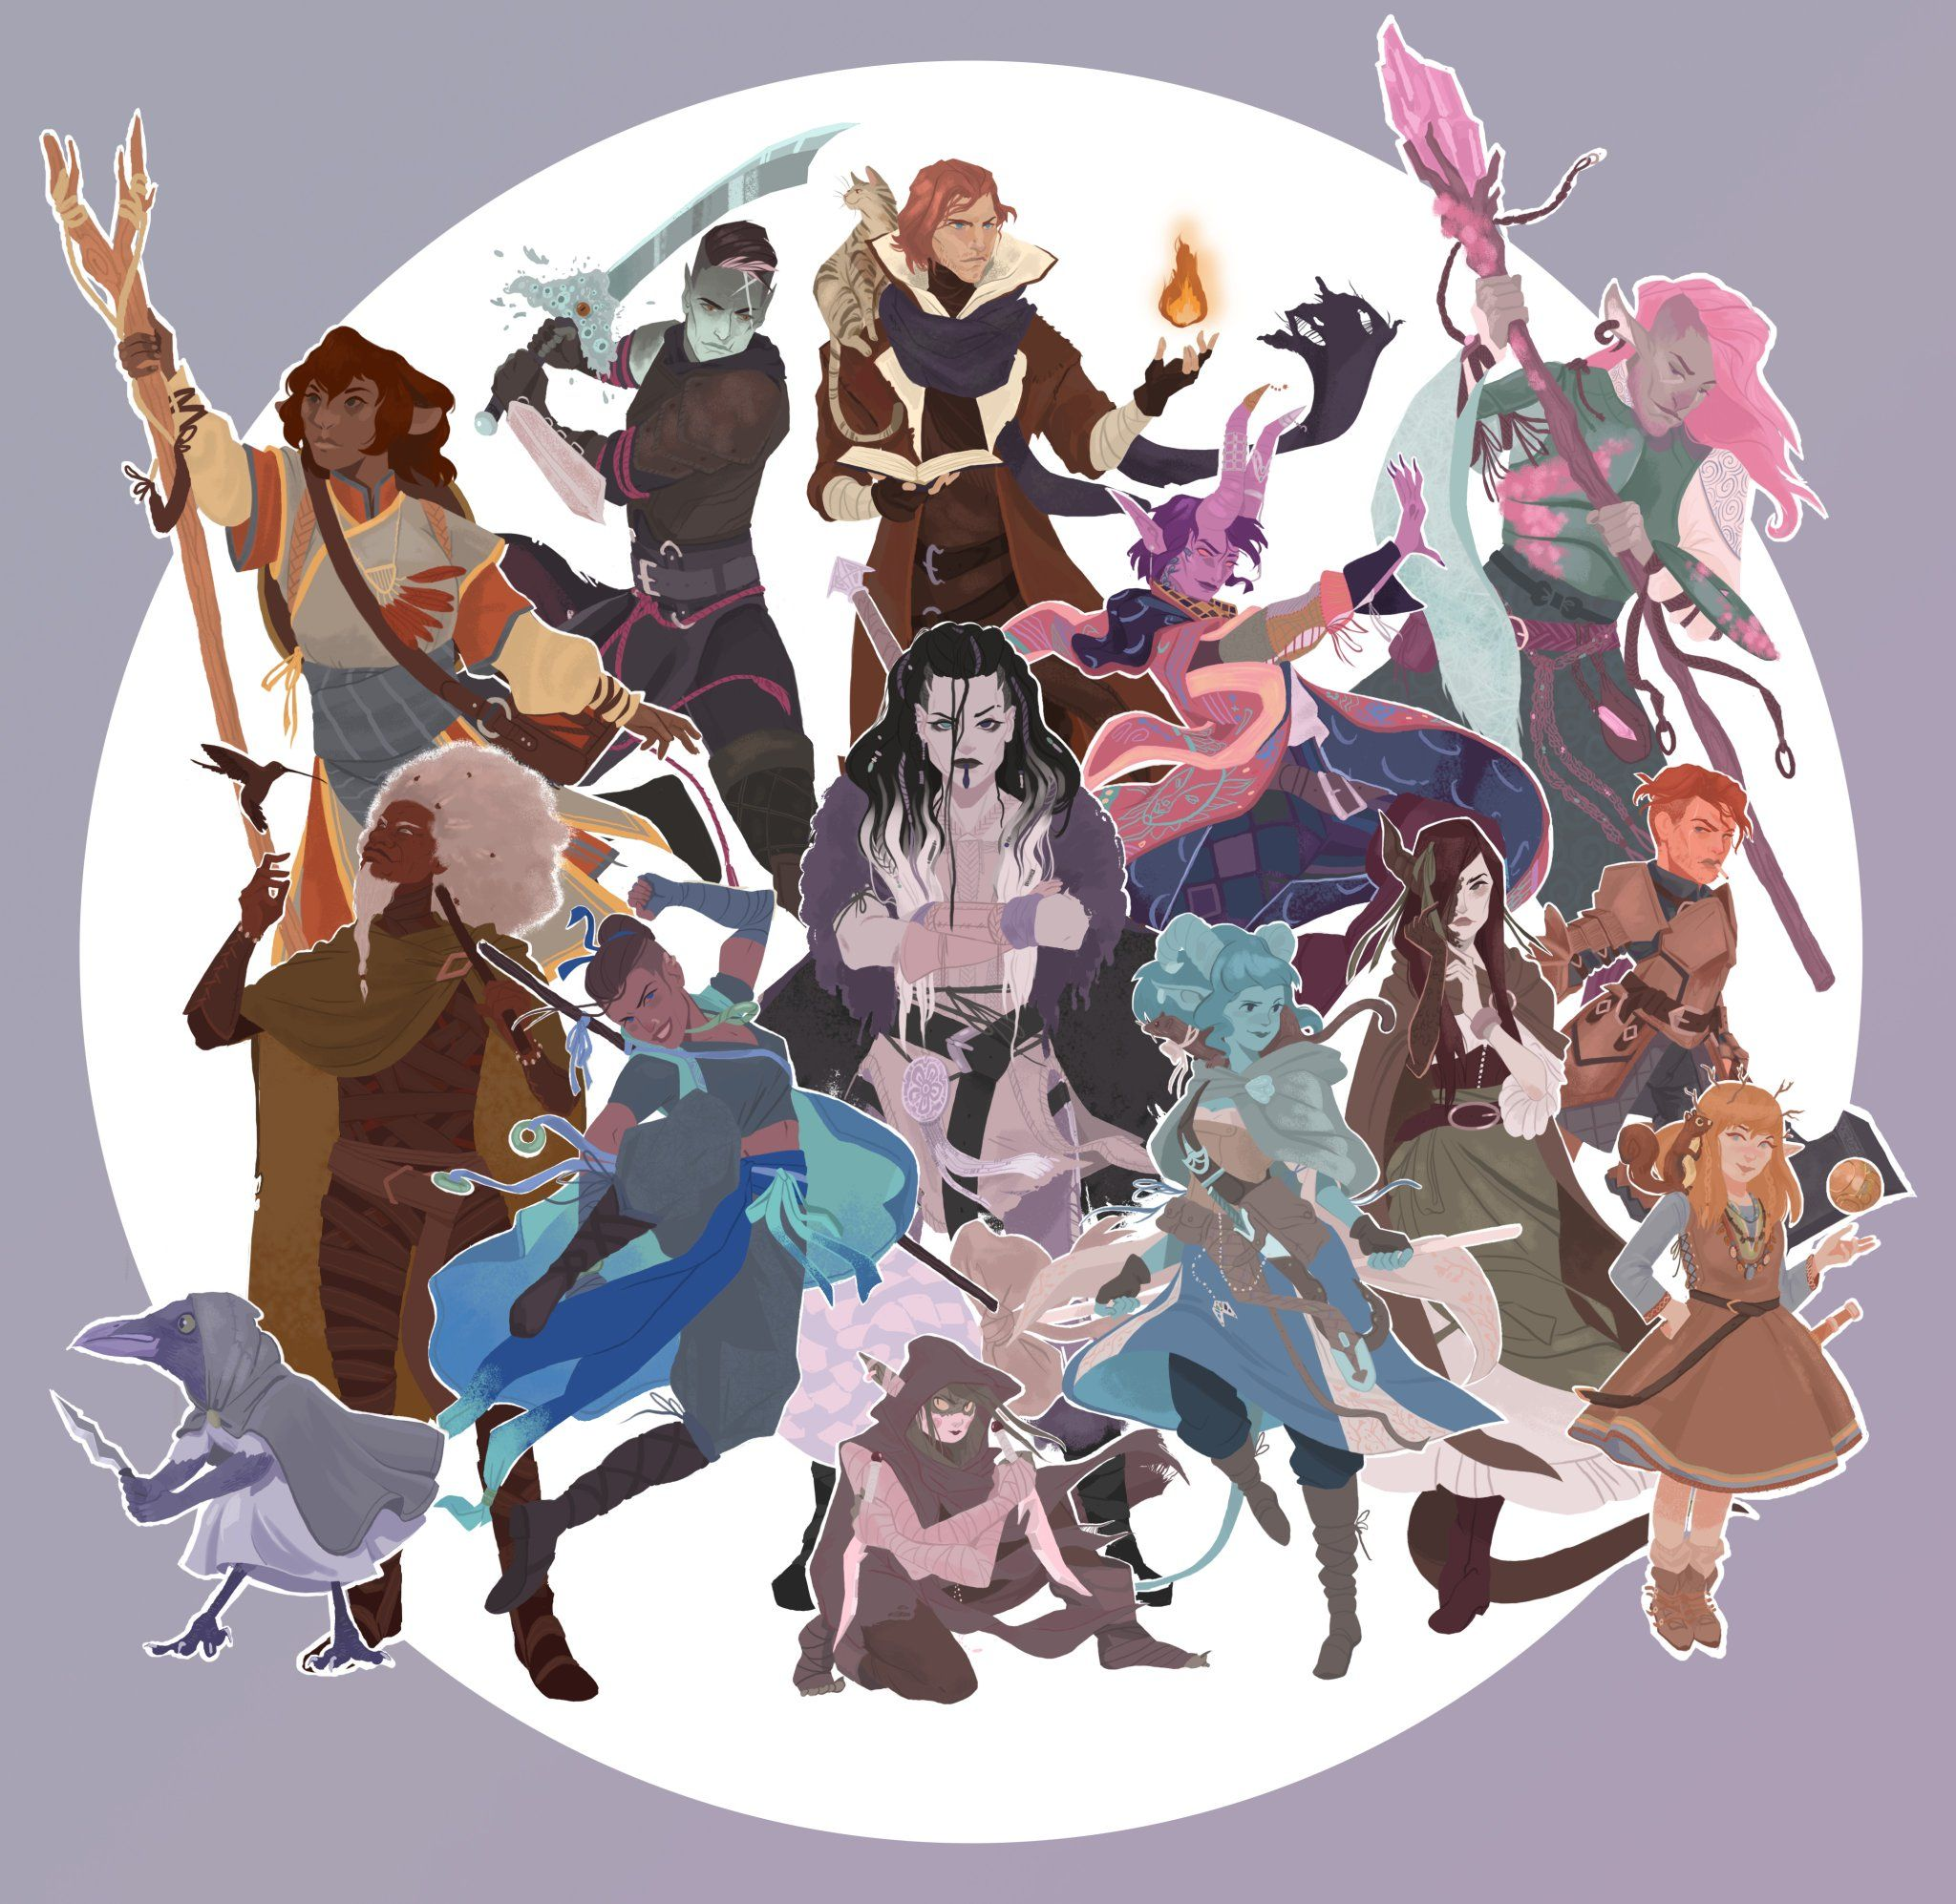 Julie Rush On Twitter Critical Role Characters Critical Role Critical Role Fan Art Tiberius is an original member of vox machina and is in the vox machina origins comic series. pinterest